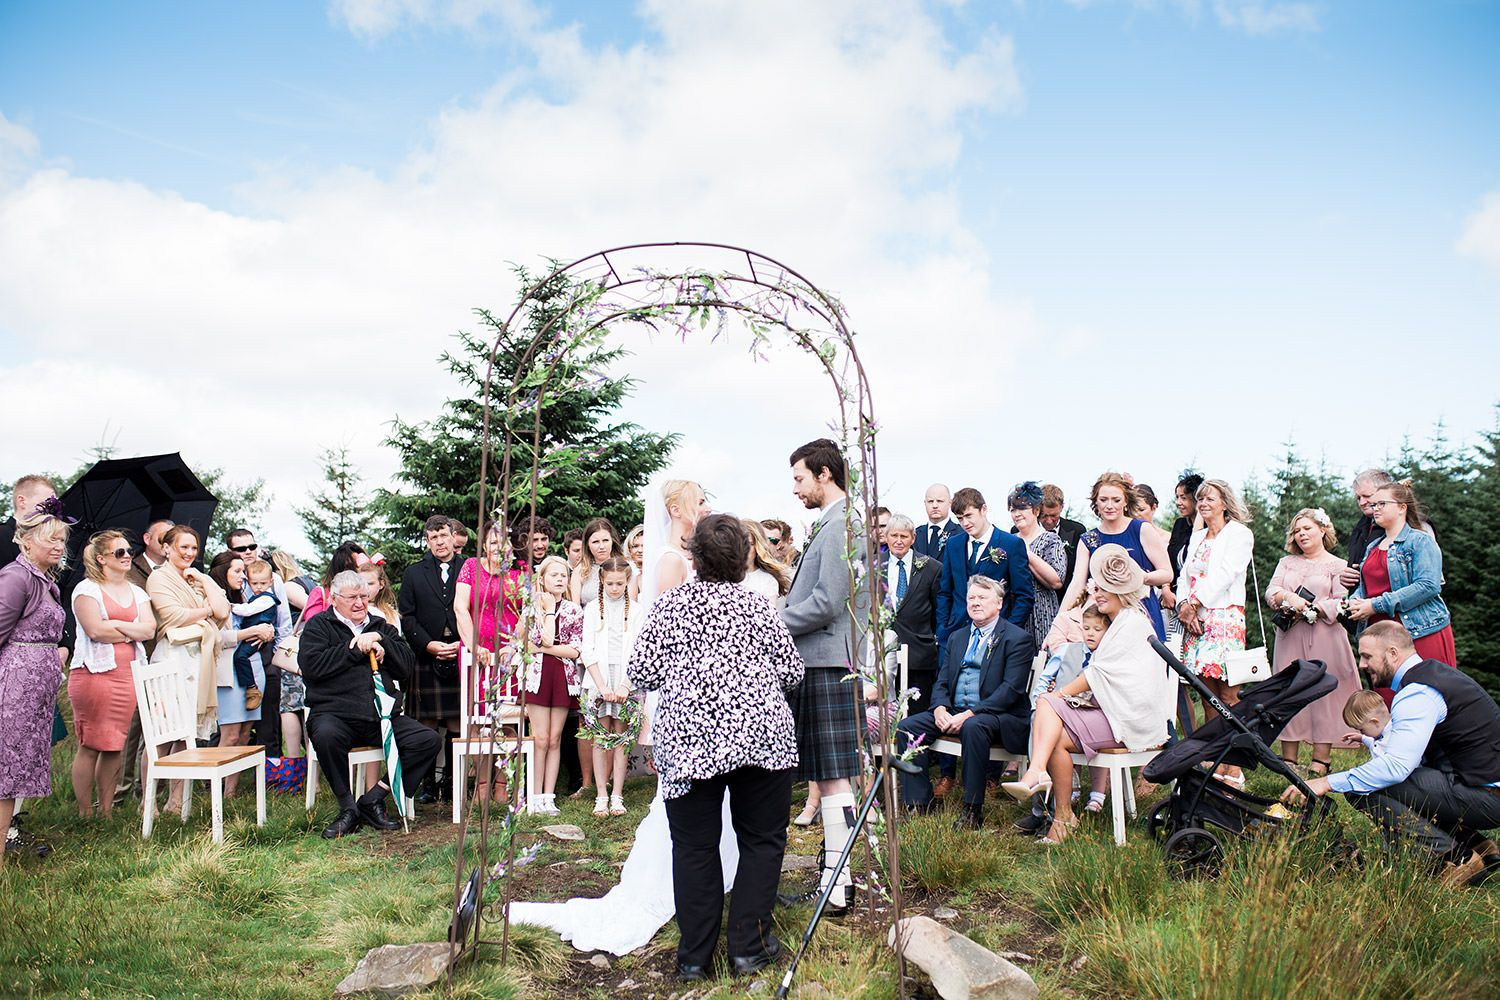 Dumfries Wedding Venue | Ae Forest Boho Hilltop Wedding. Amazing for small and intimate weddings like Callum & Carries.